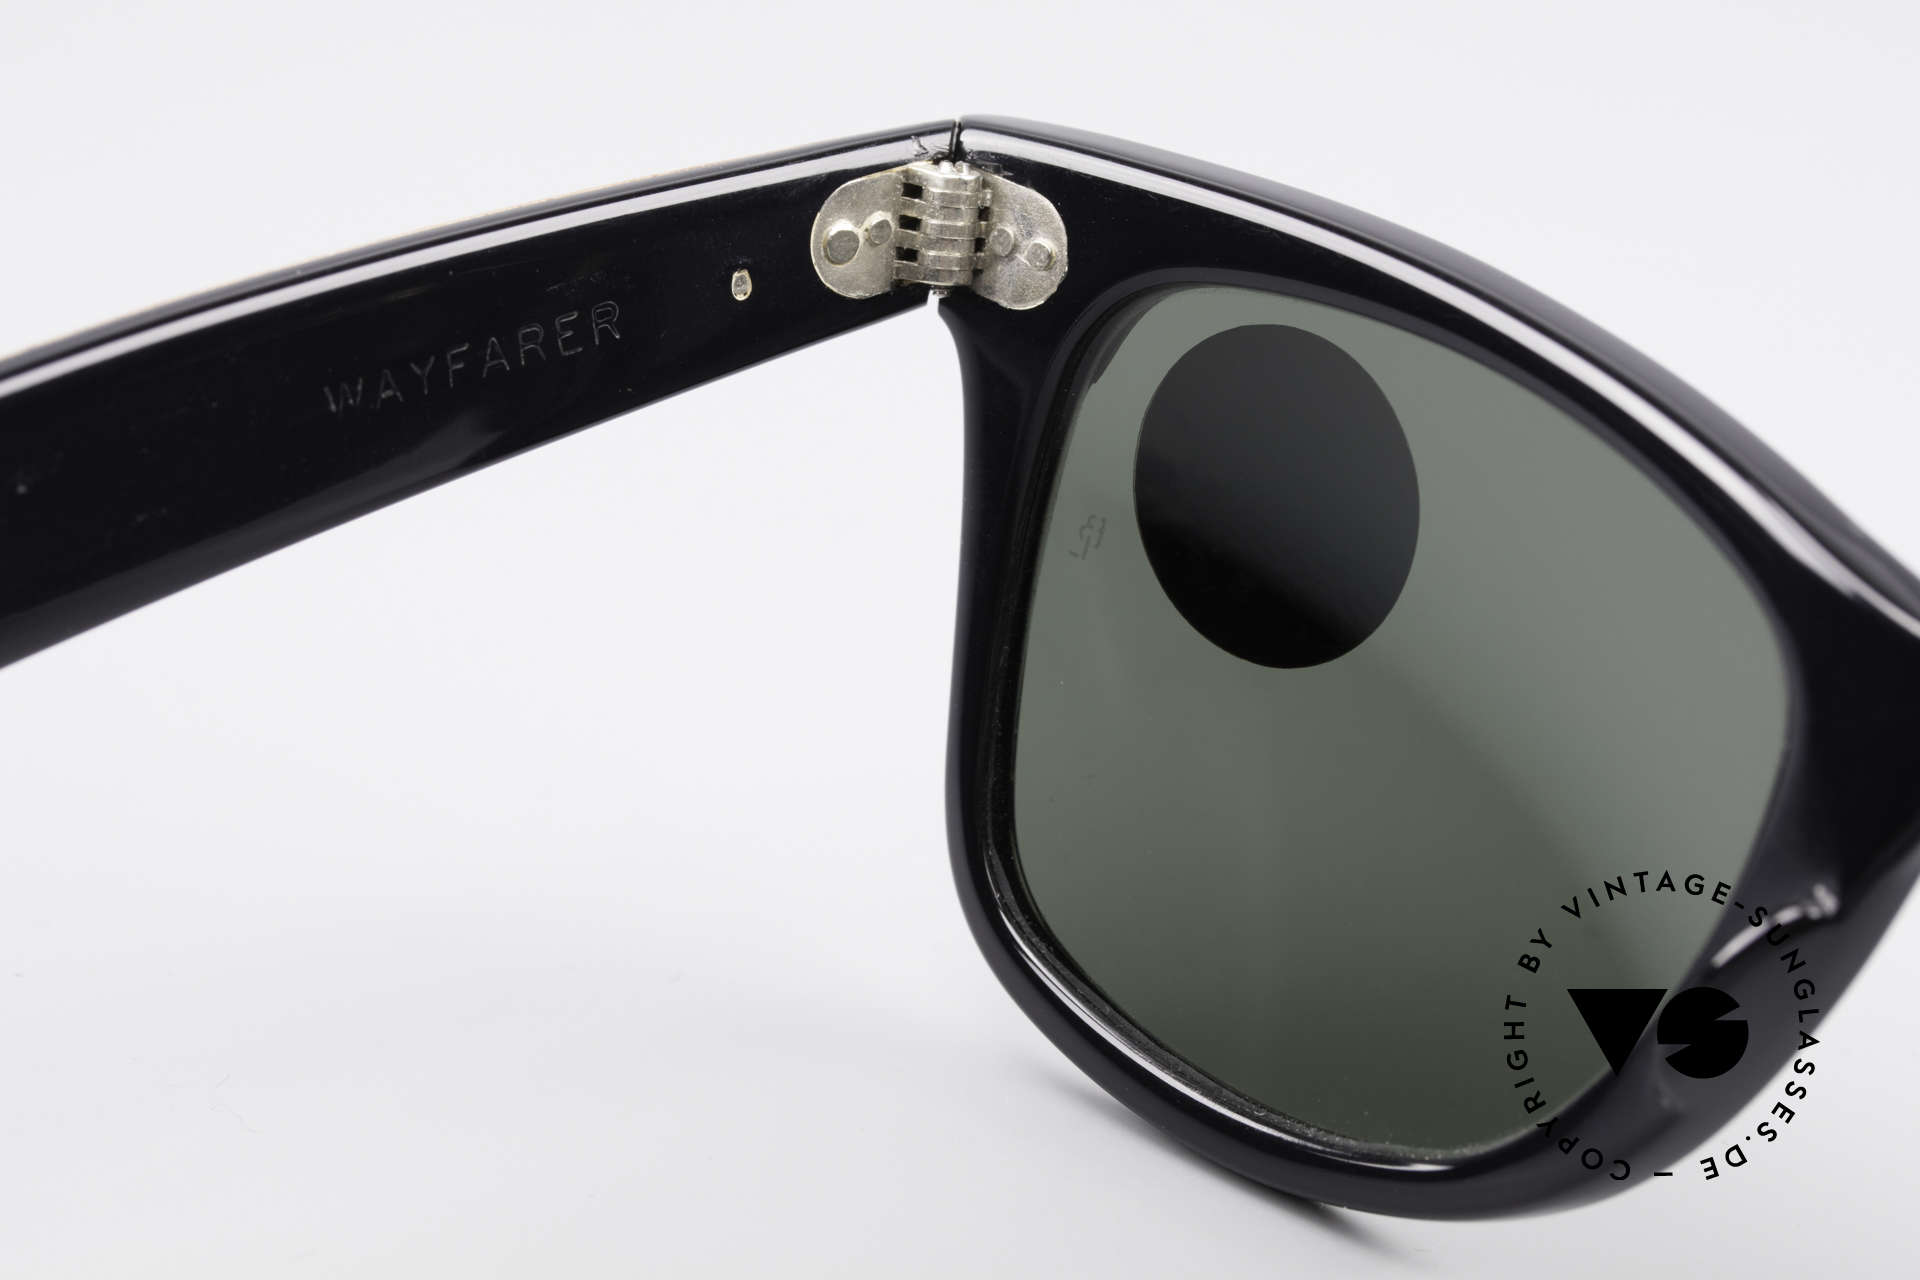 Ray Ban Wayfarer I Limited Leather Sunglasses, NO retro Italy-Wayfarer; an old 80's USA ORIGINAL, Made for Men and Women